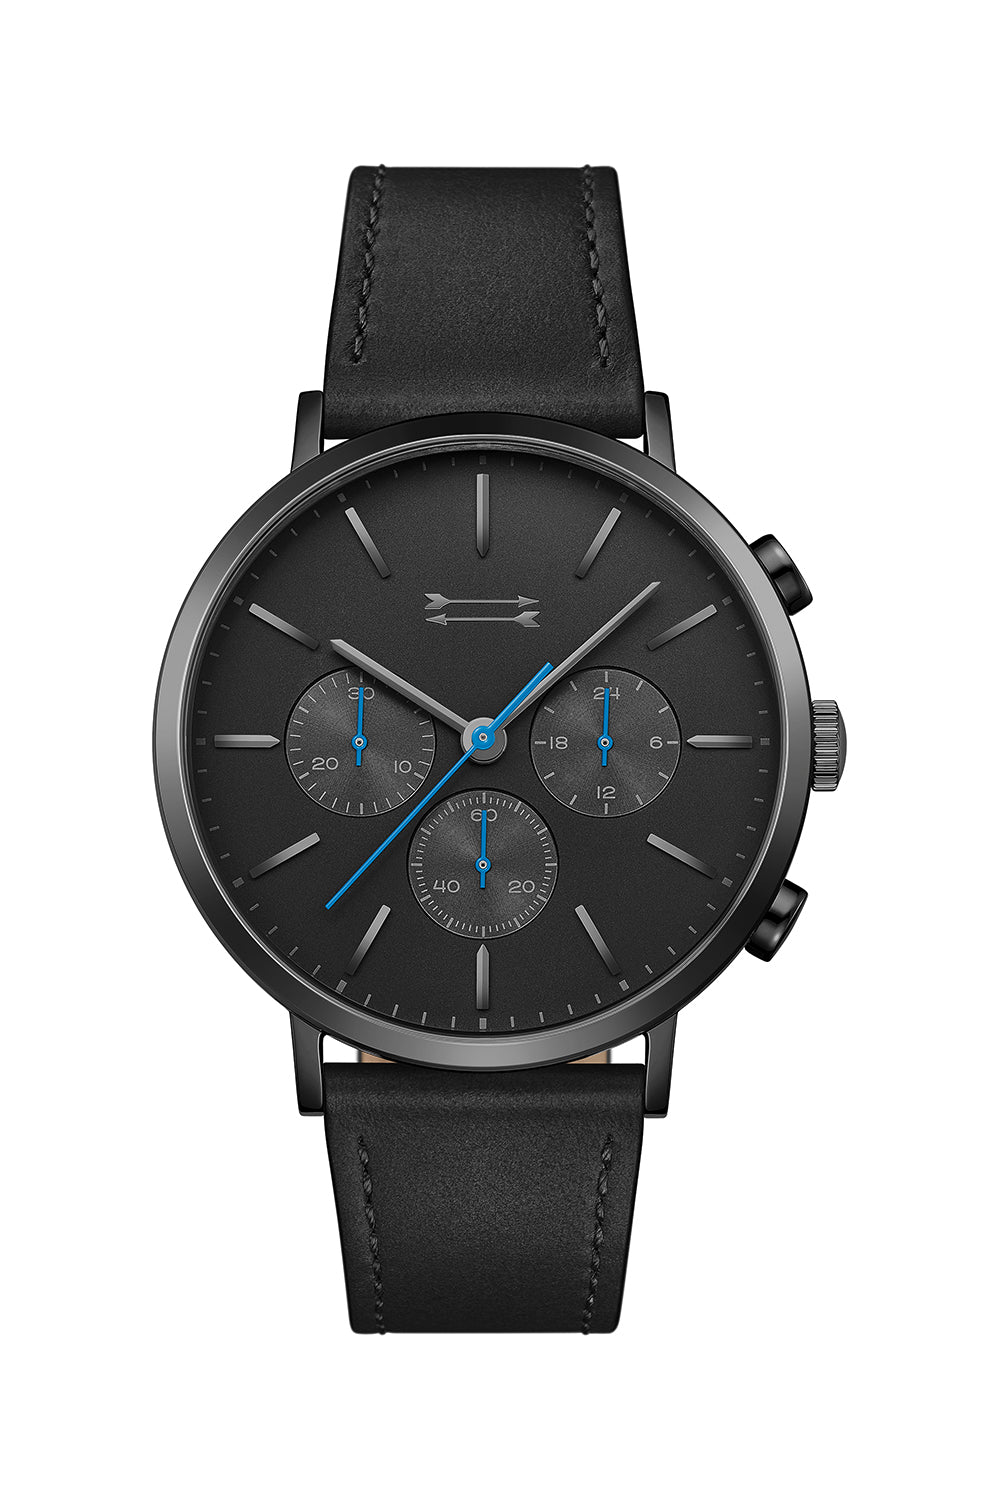 Uri-Minkoff Griffith Black Tone Leather Watch, 43MM